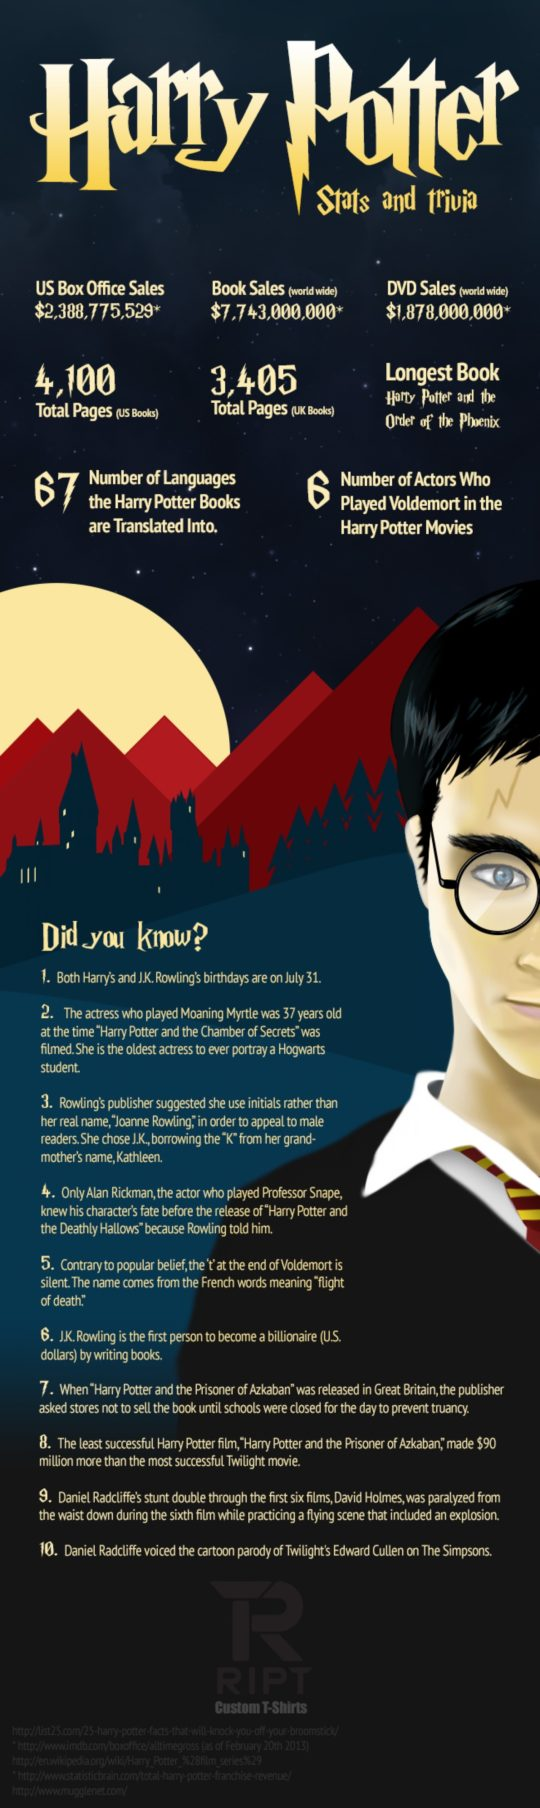 Harry Potter fanfiction facts #infographic